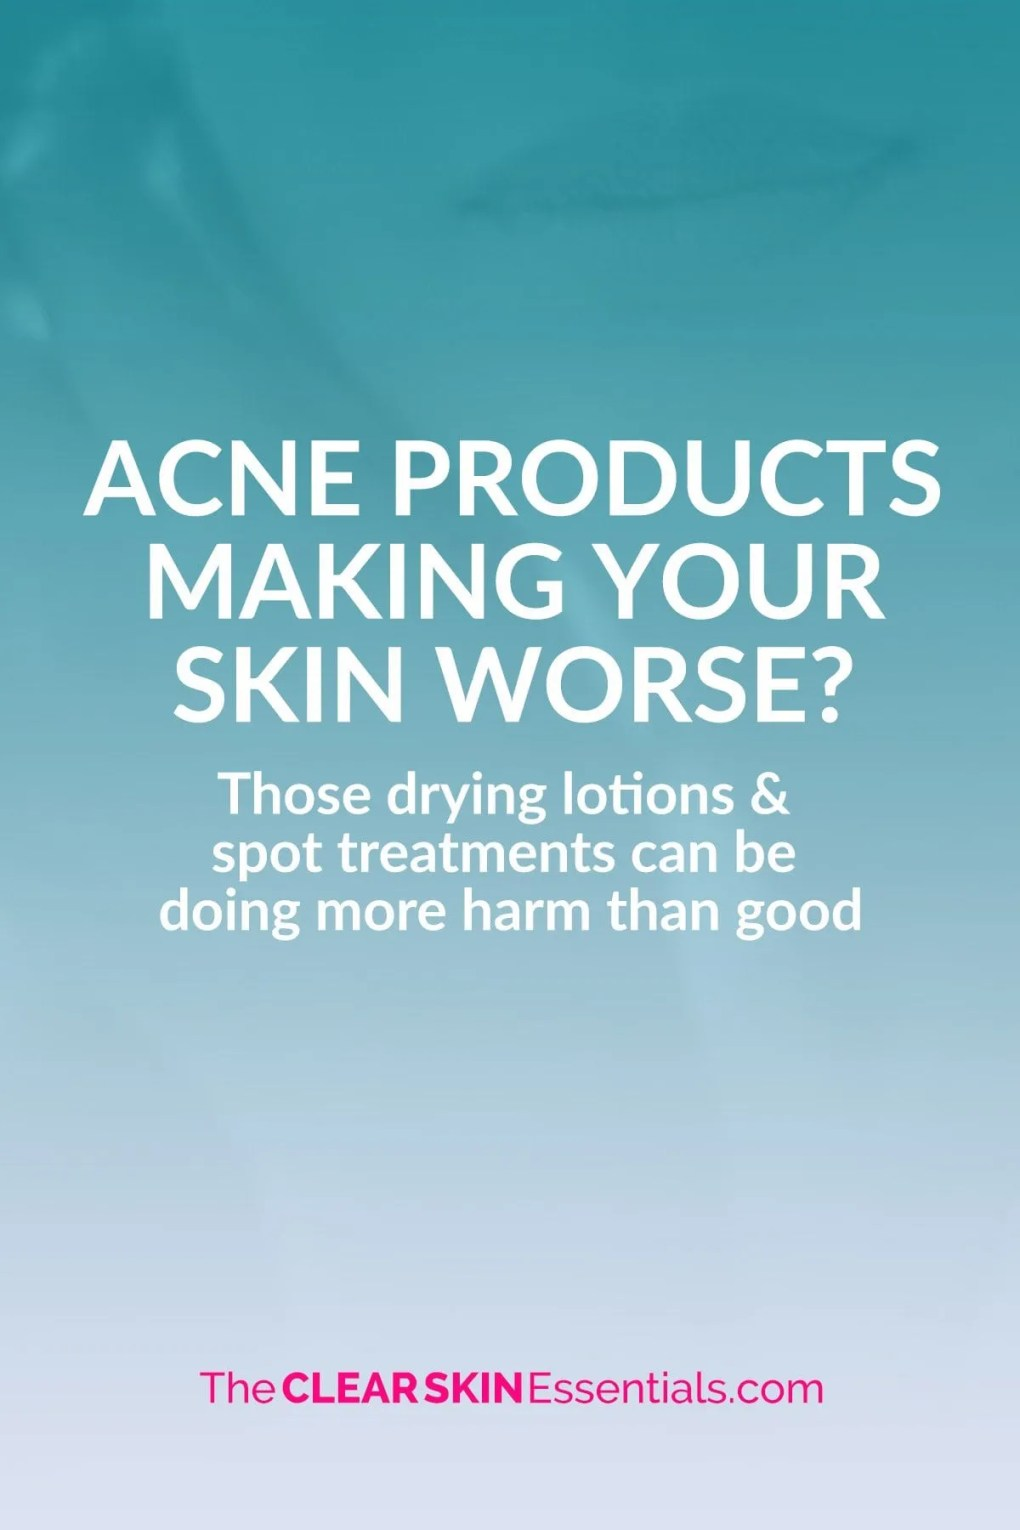 Can acne products be making your skin worse? The reality is benzoyl peroxide and salicylic acid are very drying and irritating. Those drying lotions and acne spot treatments could in fact be making you have more breakouts, delaying your skin's ability to heal, and even cause hyperpigmentation and scarring. Click through to read more (and try something else that really works) | www.TheClearSkinEssentials.com